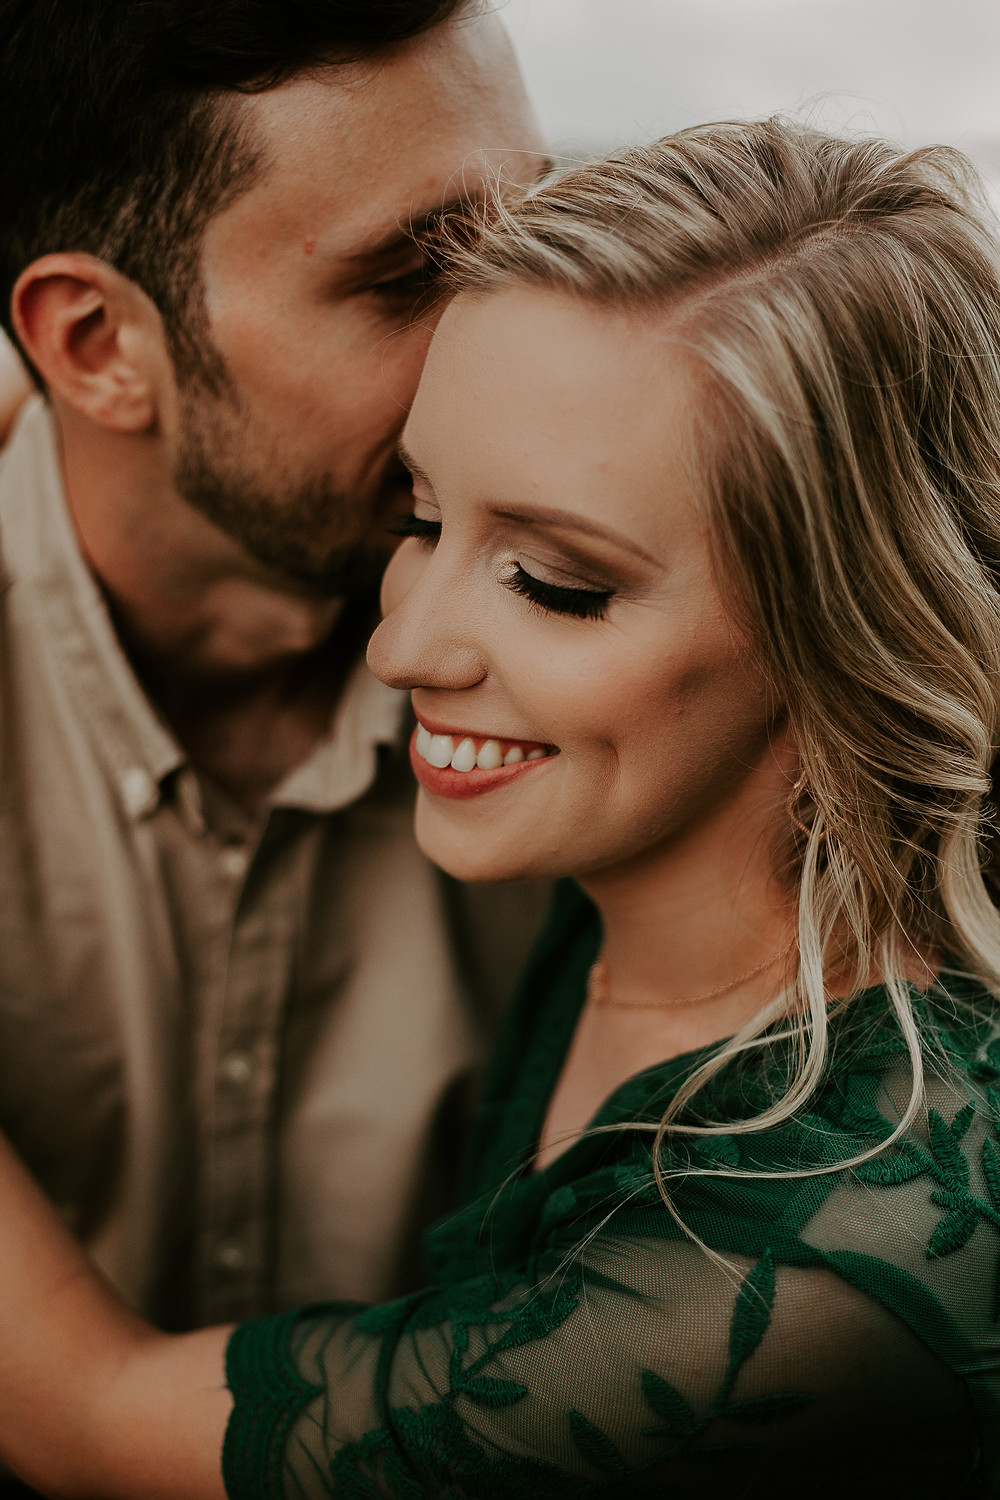 engagement session close up whispering in ear